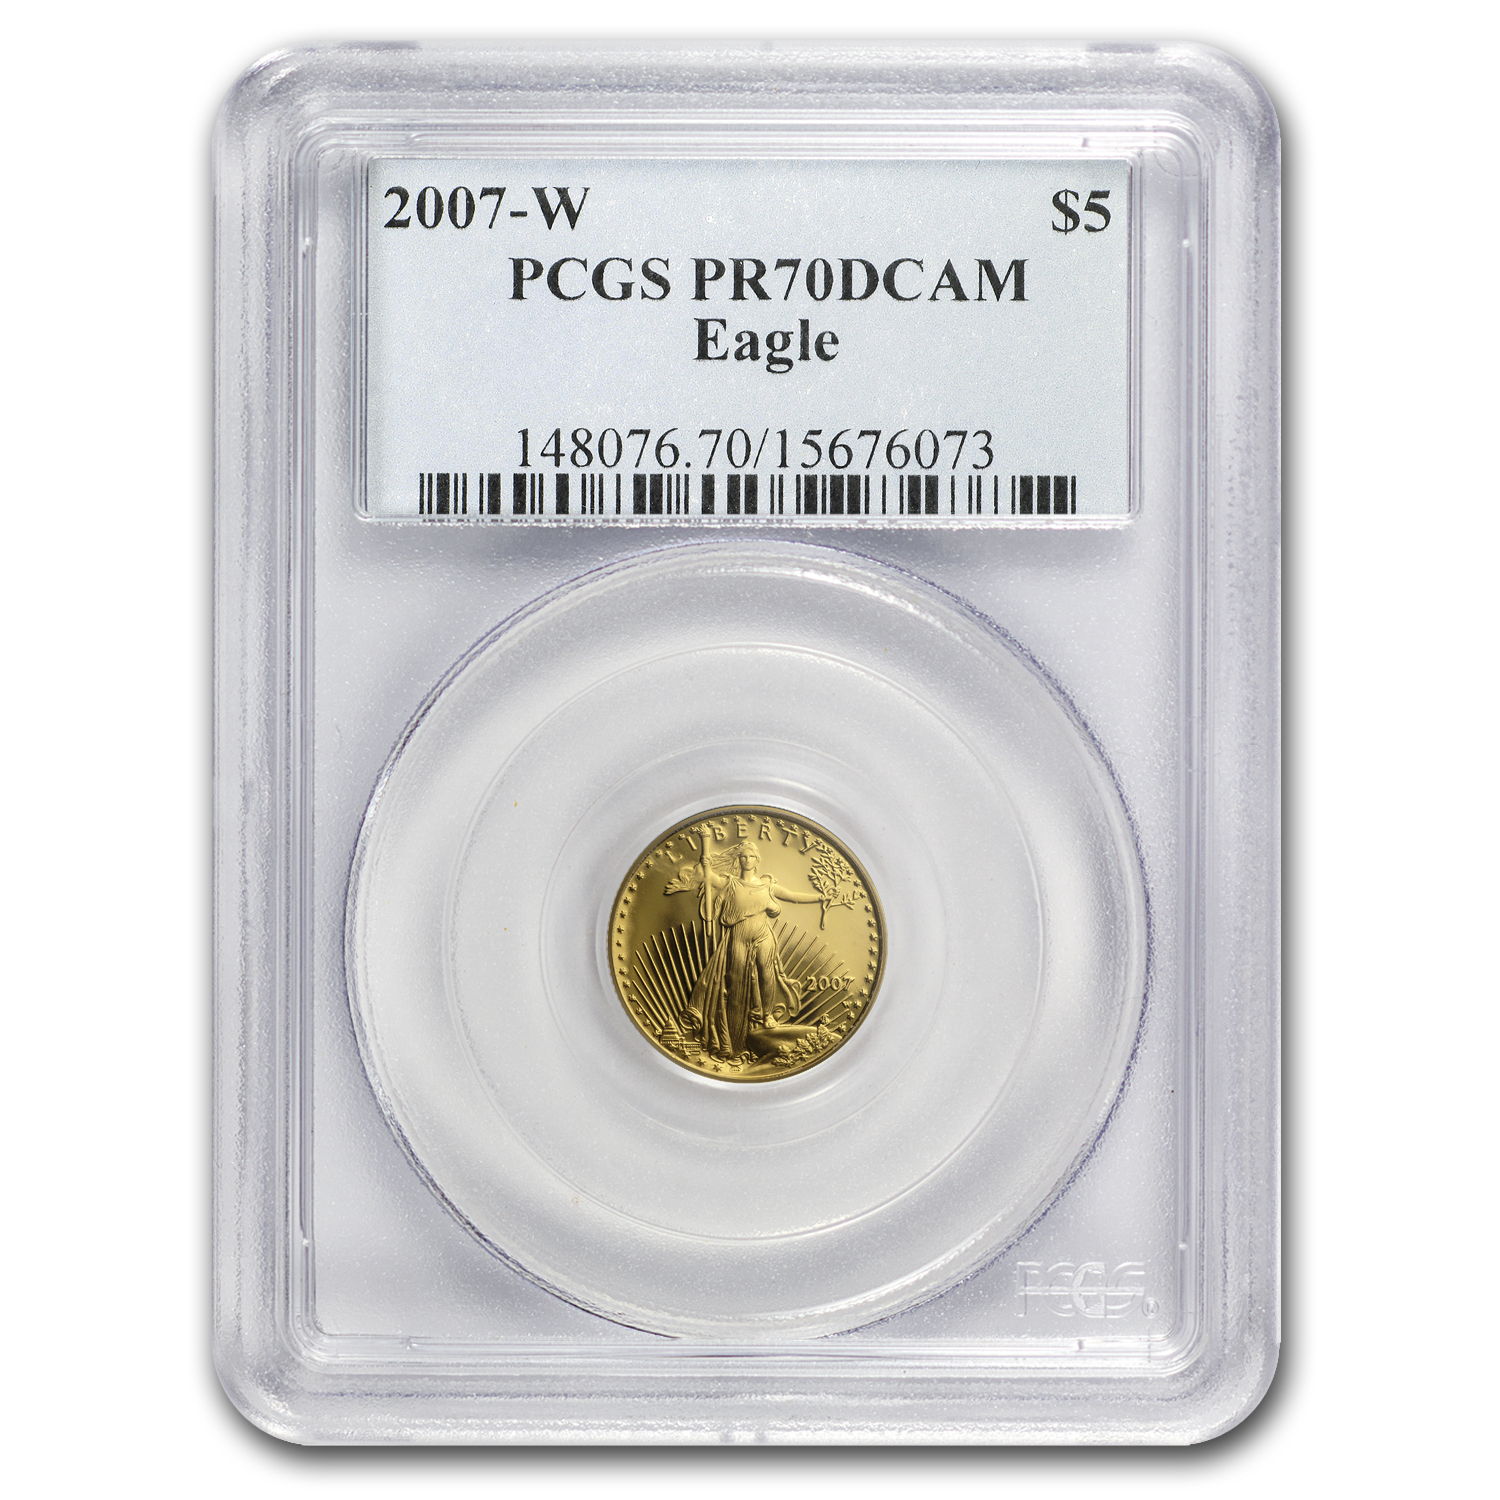 2007-W 1/10 oz Proof Gold American Eagle PR-70 PCGS